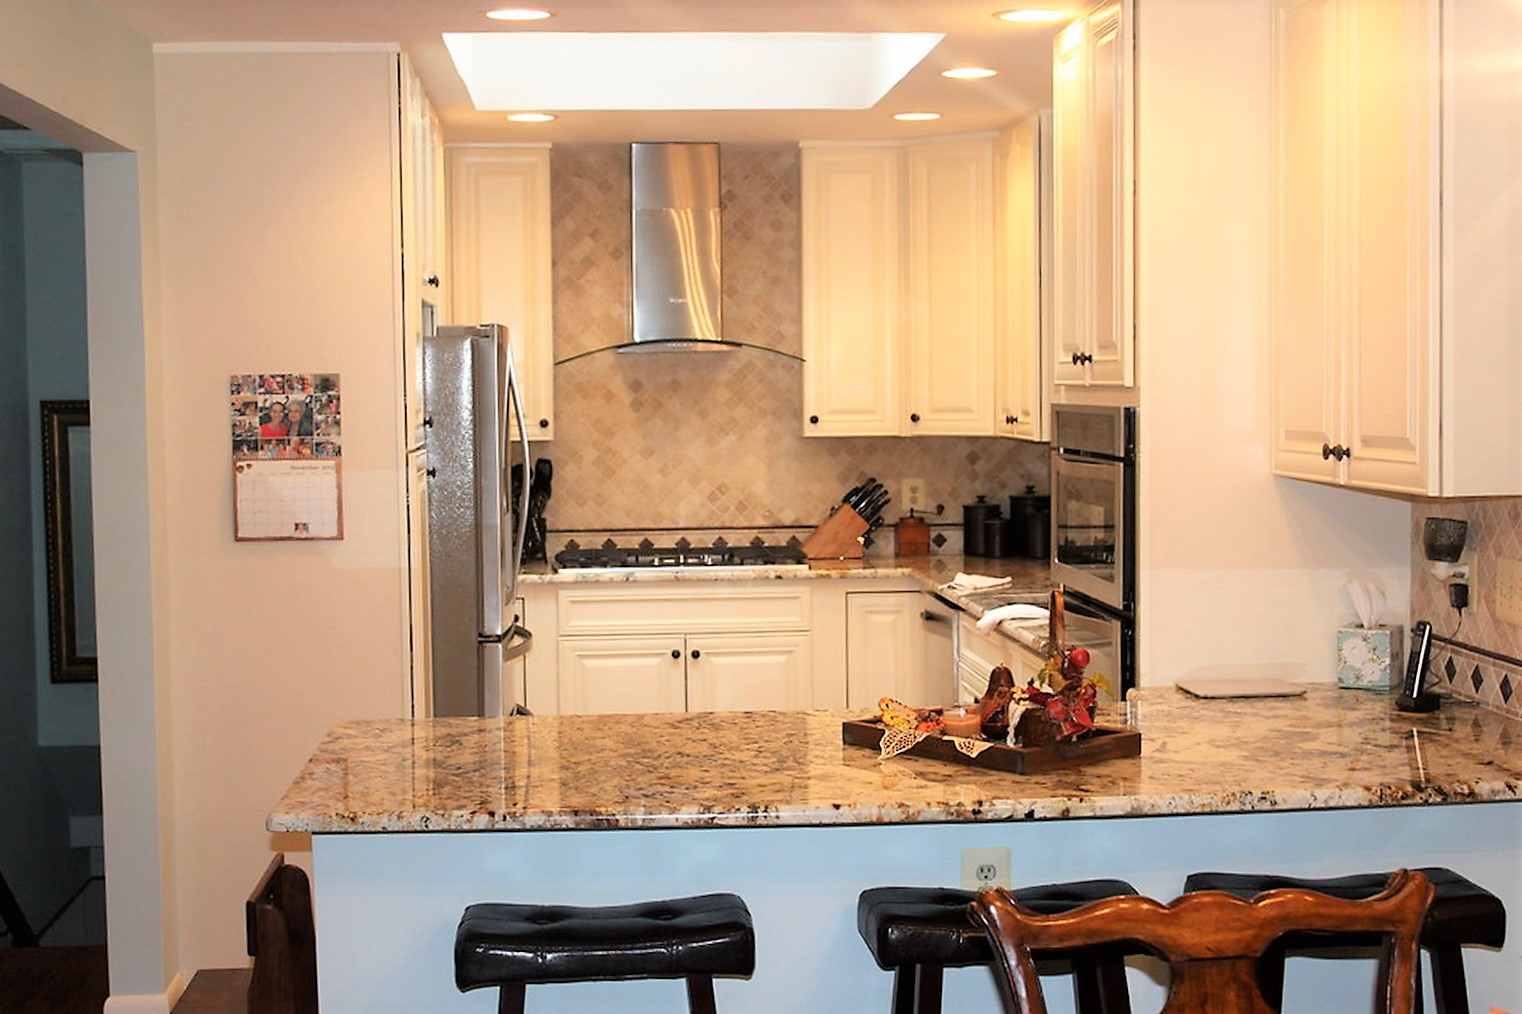 Falls church kitchen remodeling project